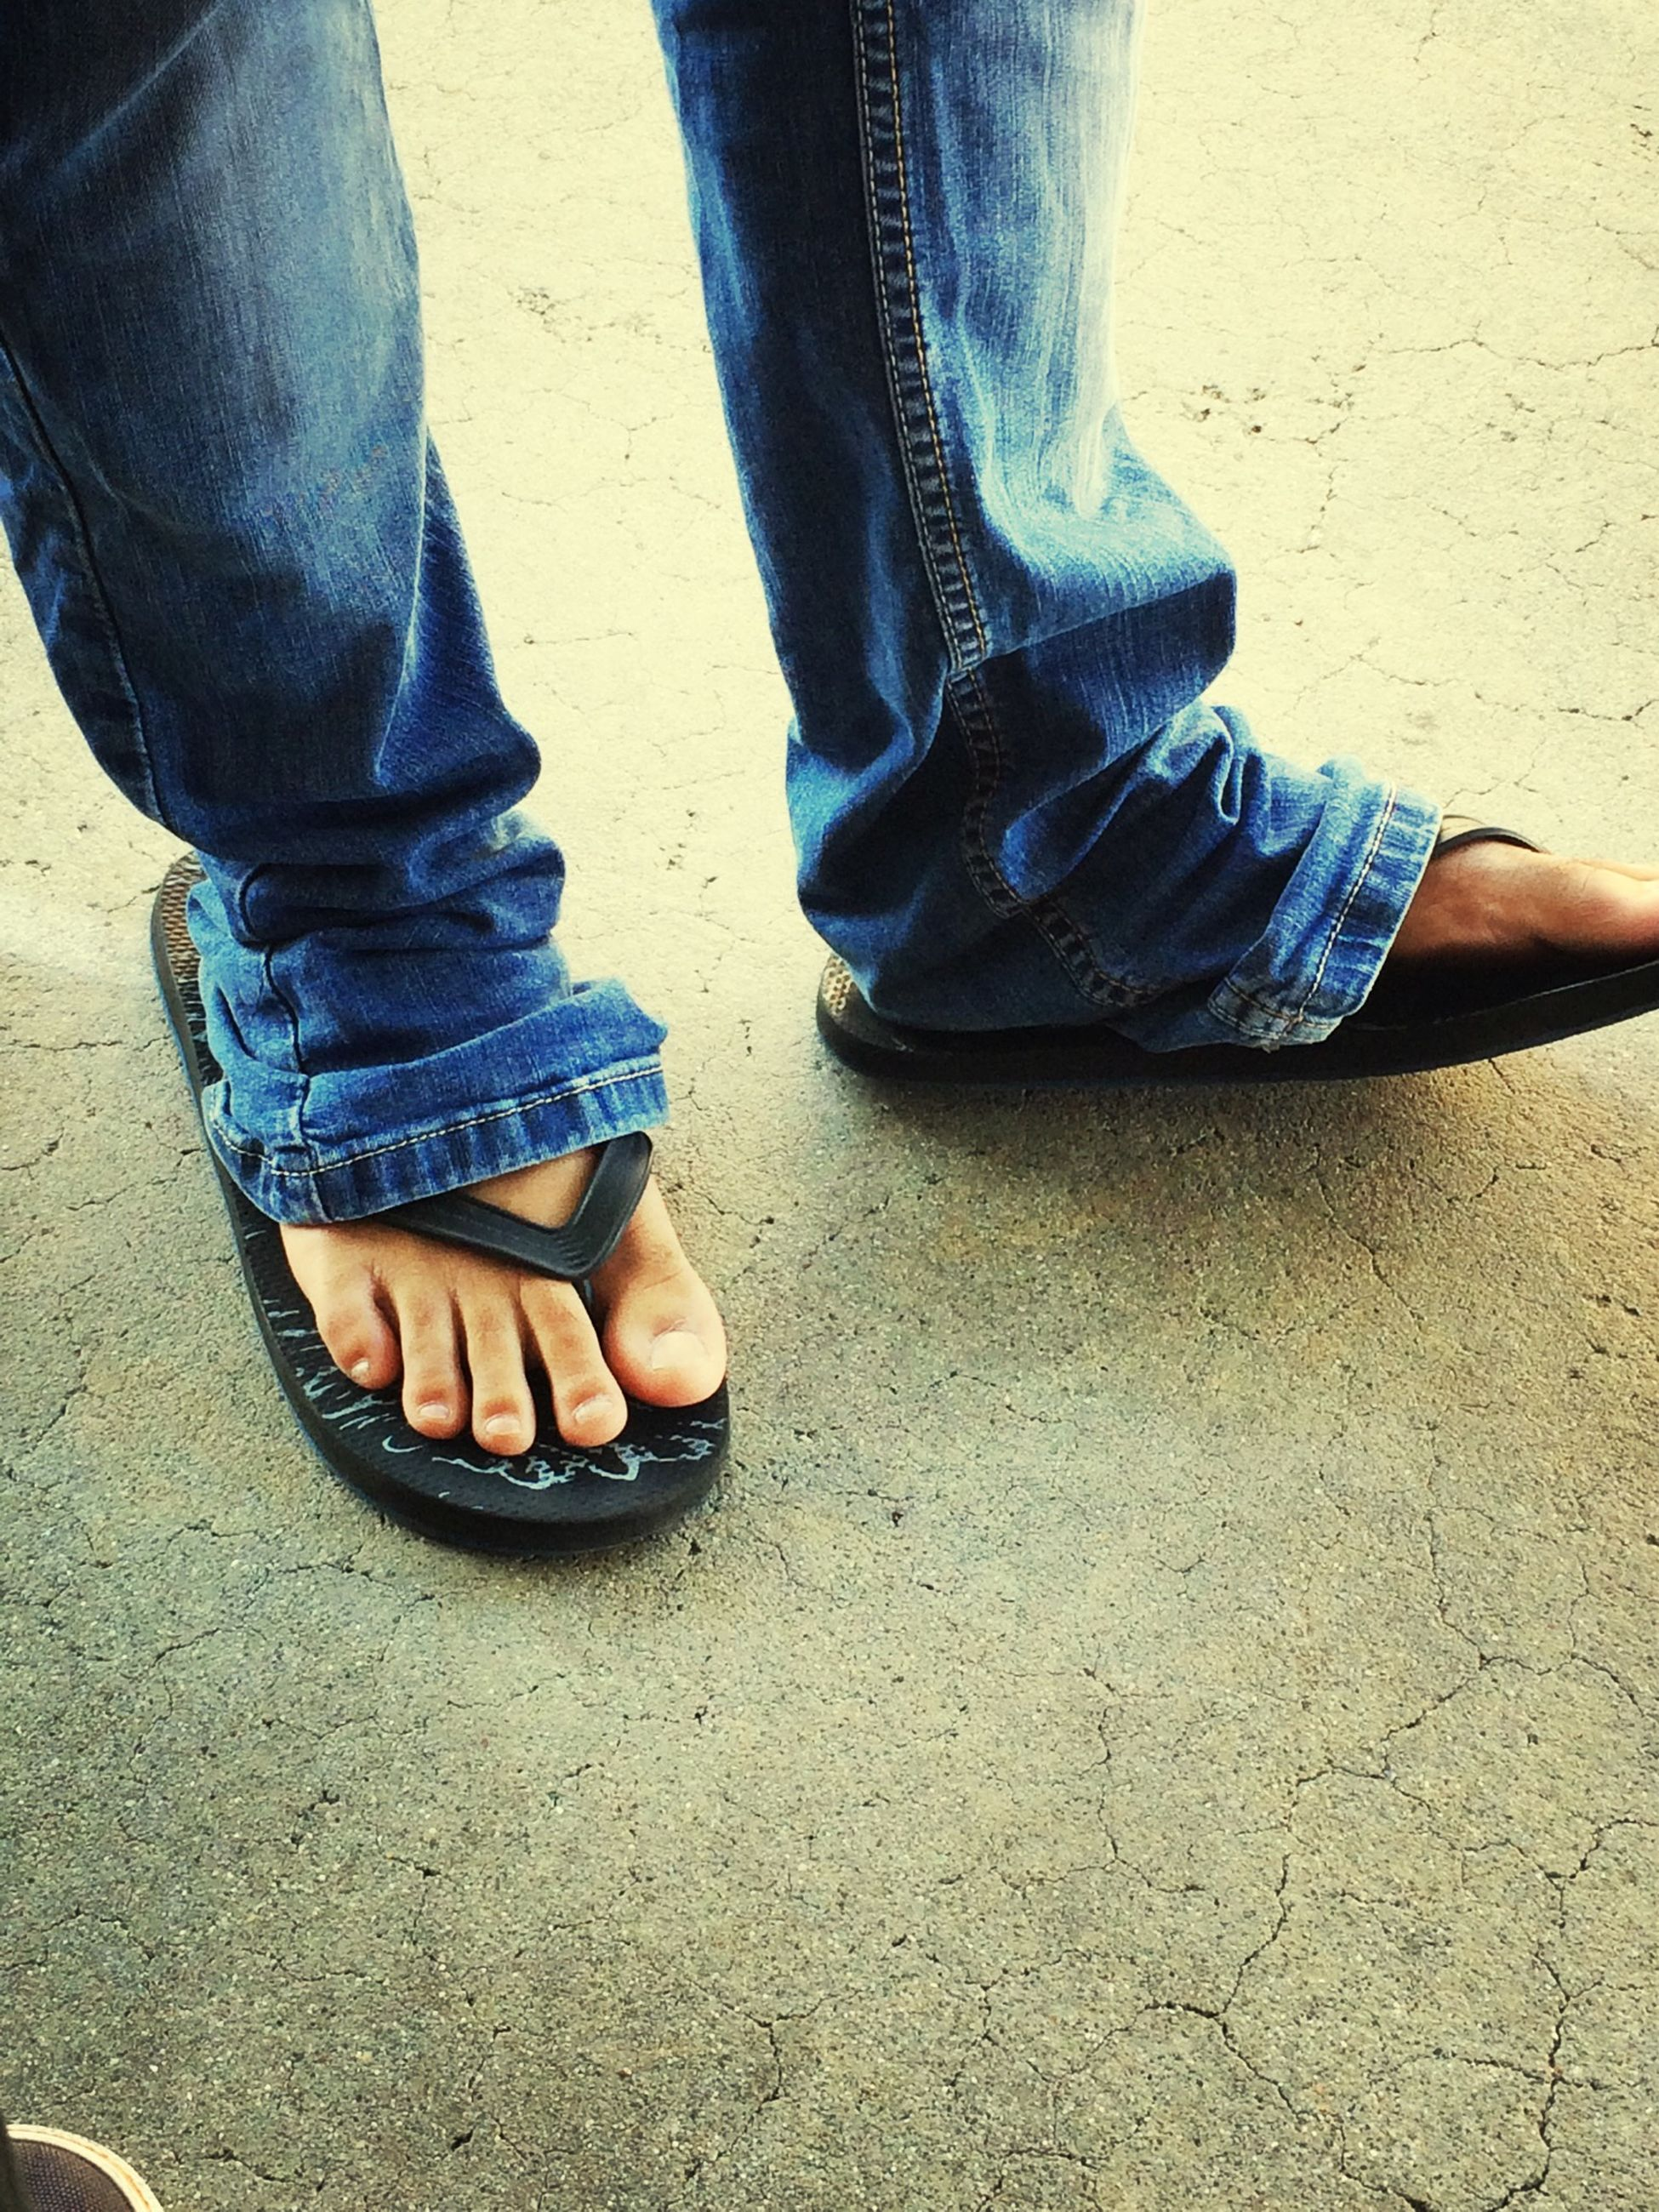 low section, person, shoe, jeans, standing, footwear, human foot, lifestyles, men, casual clothing, leisure activity, canvas shoe, fashion, denim, street